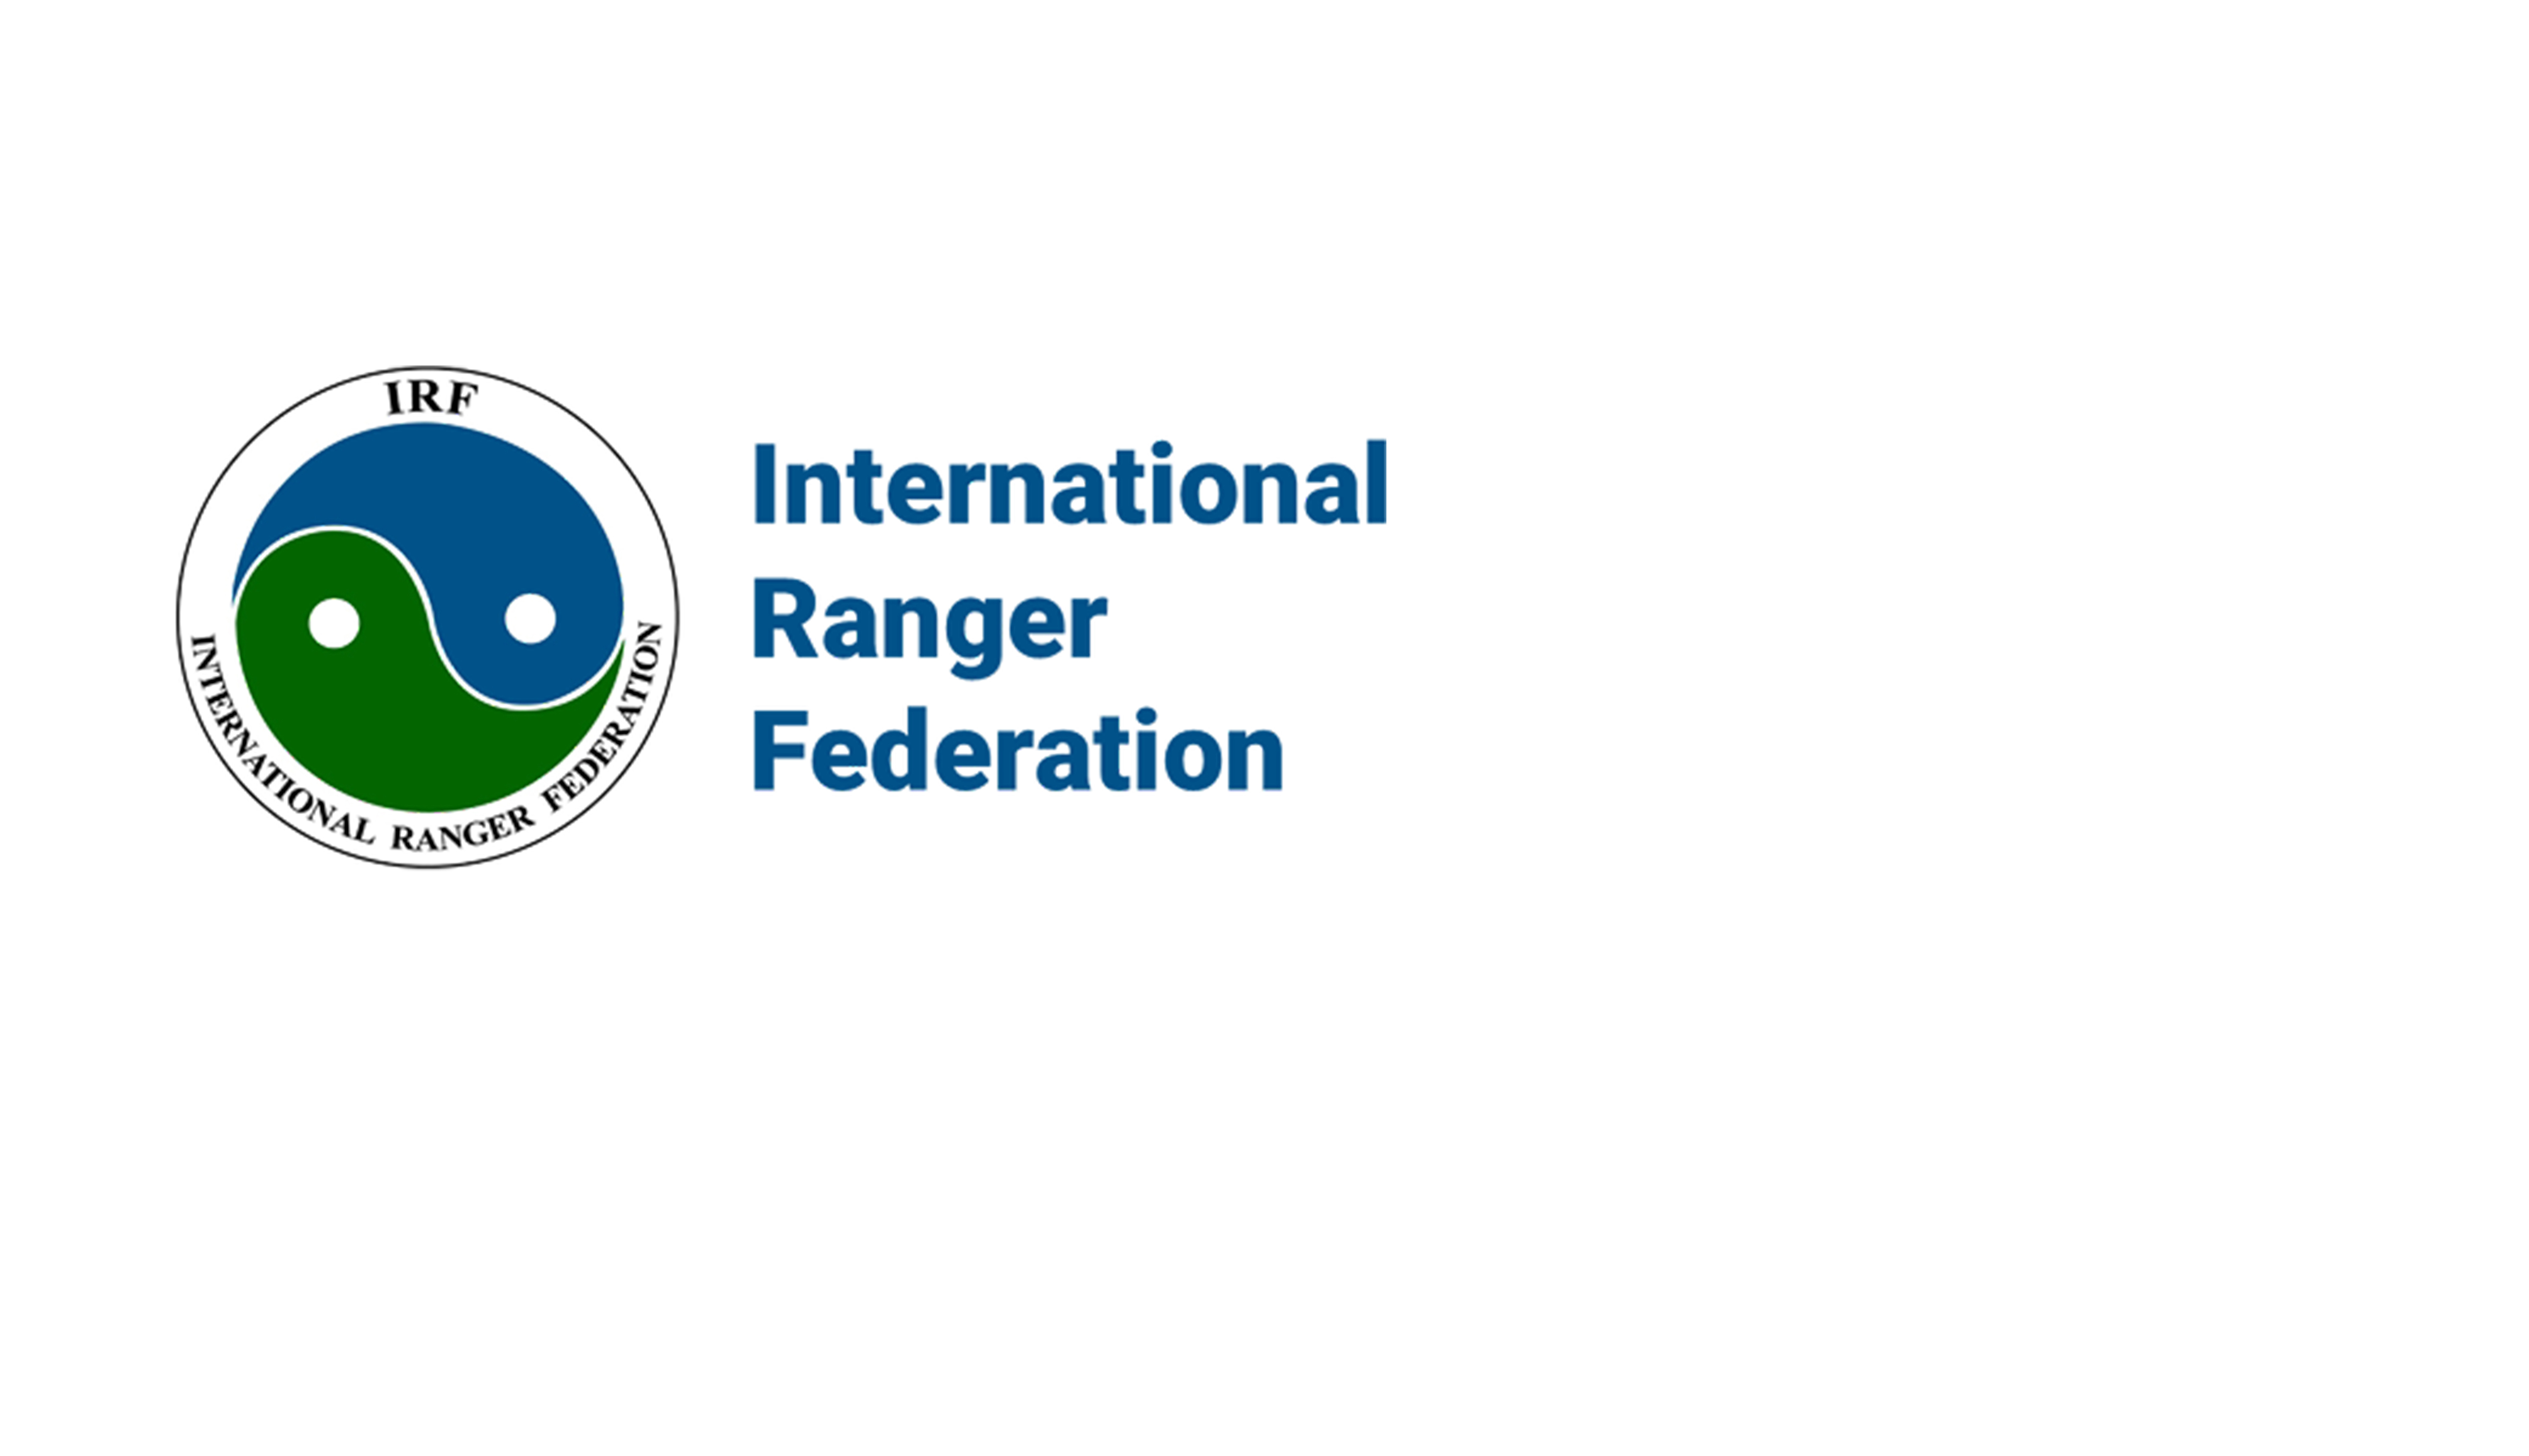 Forest for Children as a part of International Ranger Federation (IRF)